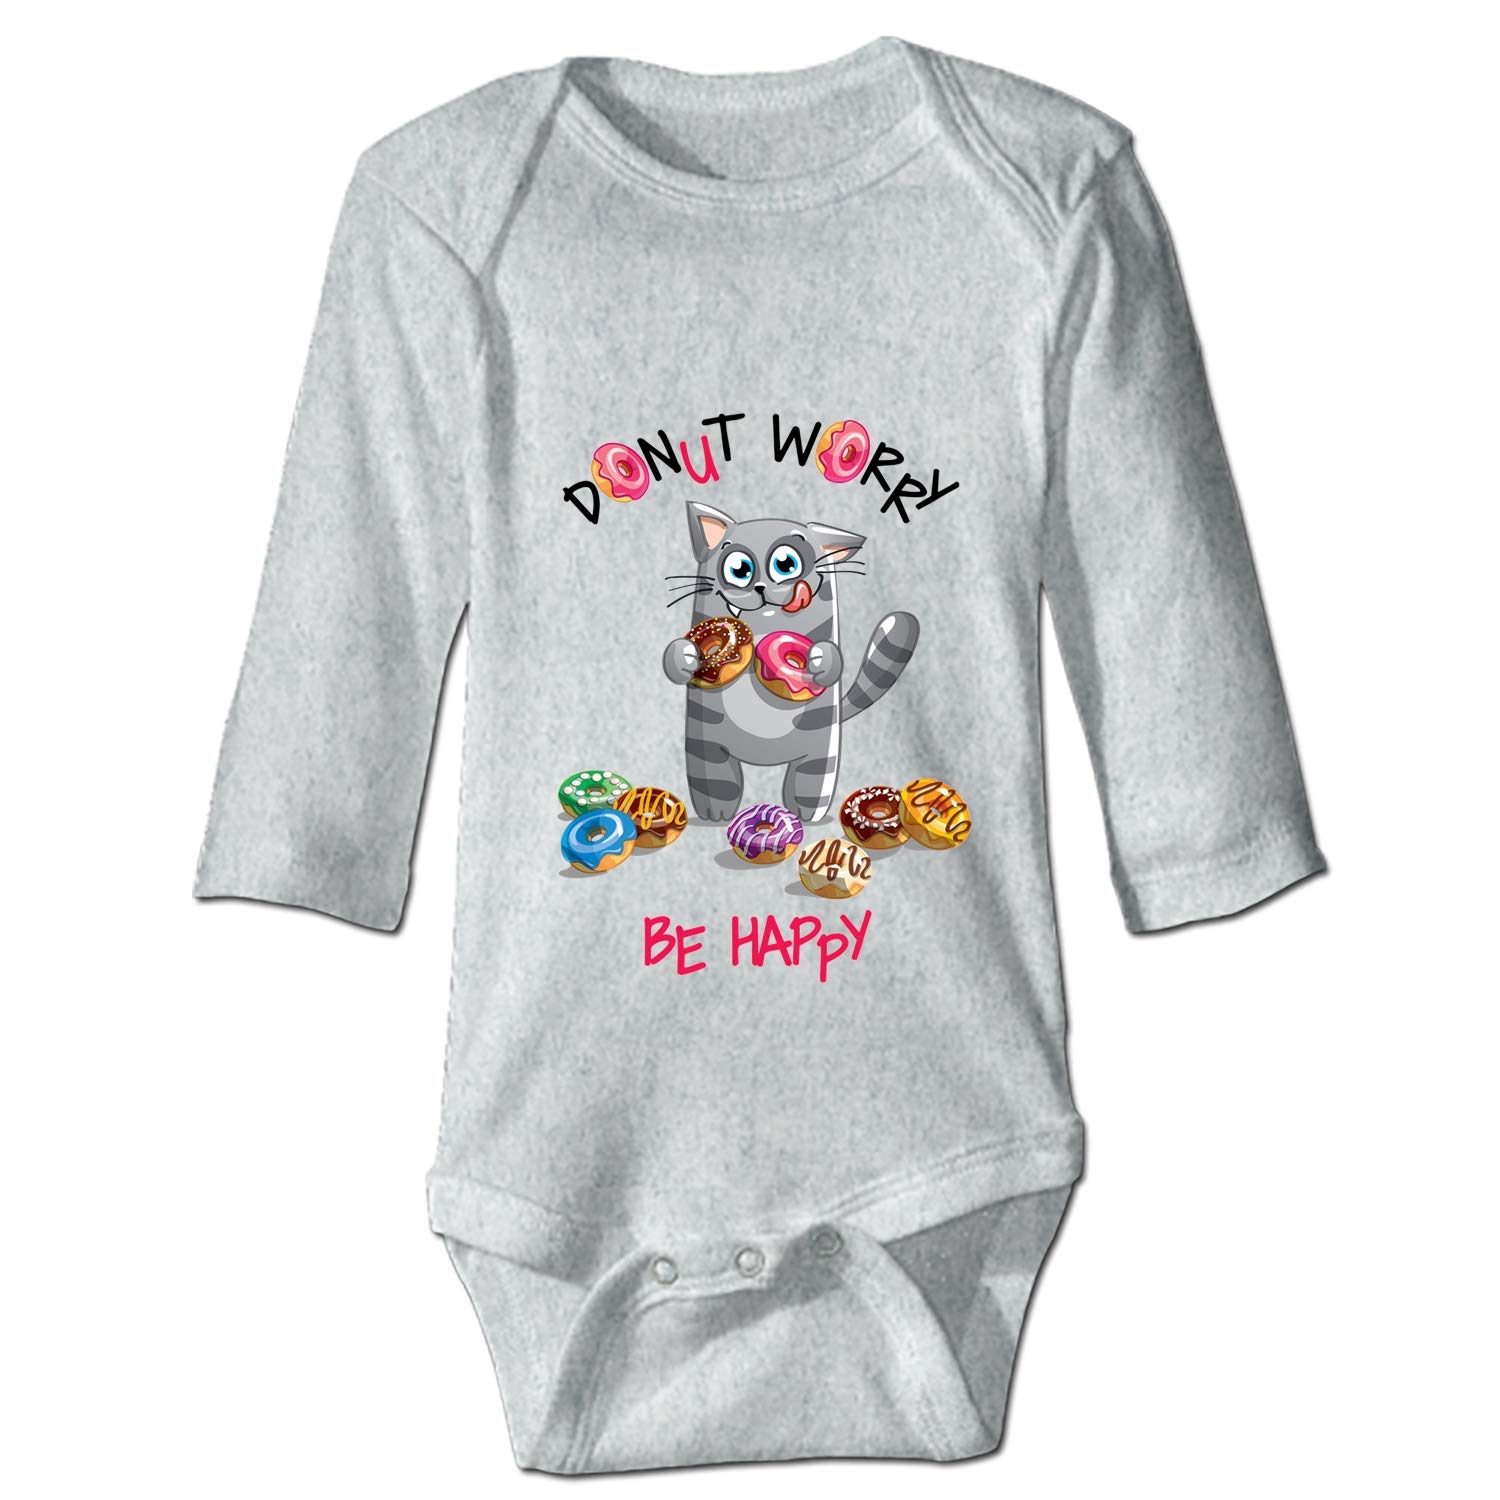 Do I Want A Beer Cute Novelty Funny Baby One-Piece Baby Bodysuit